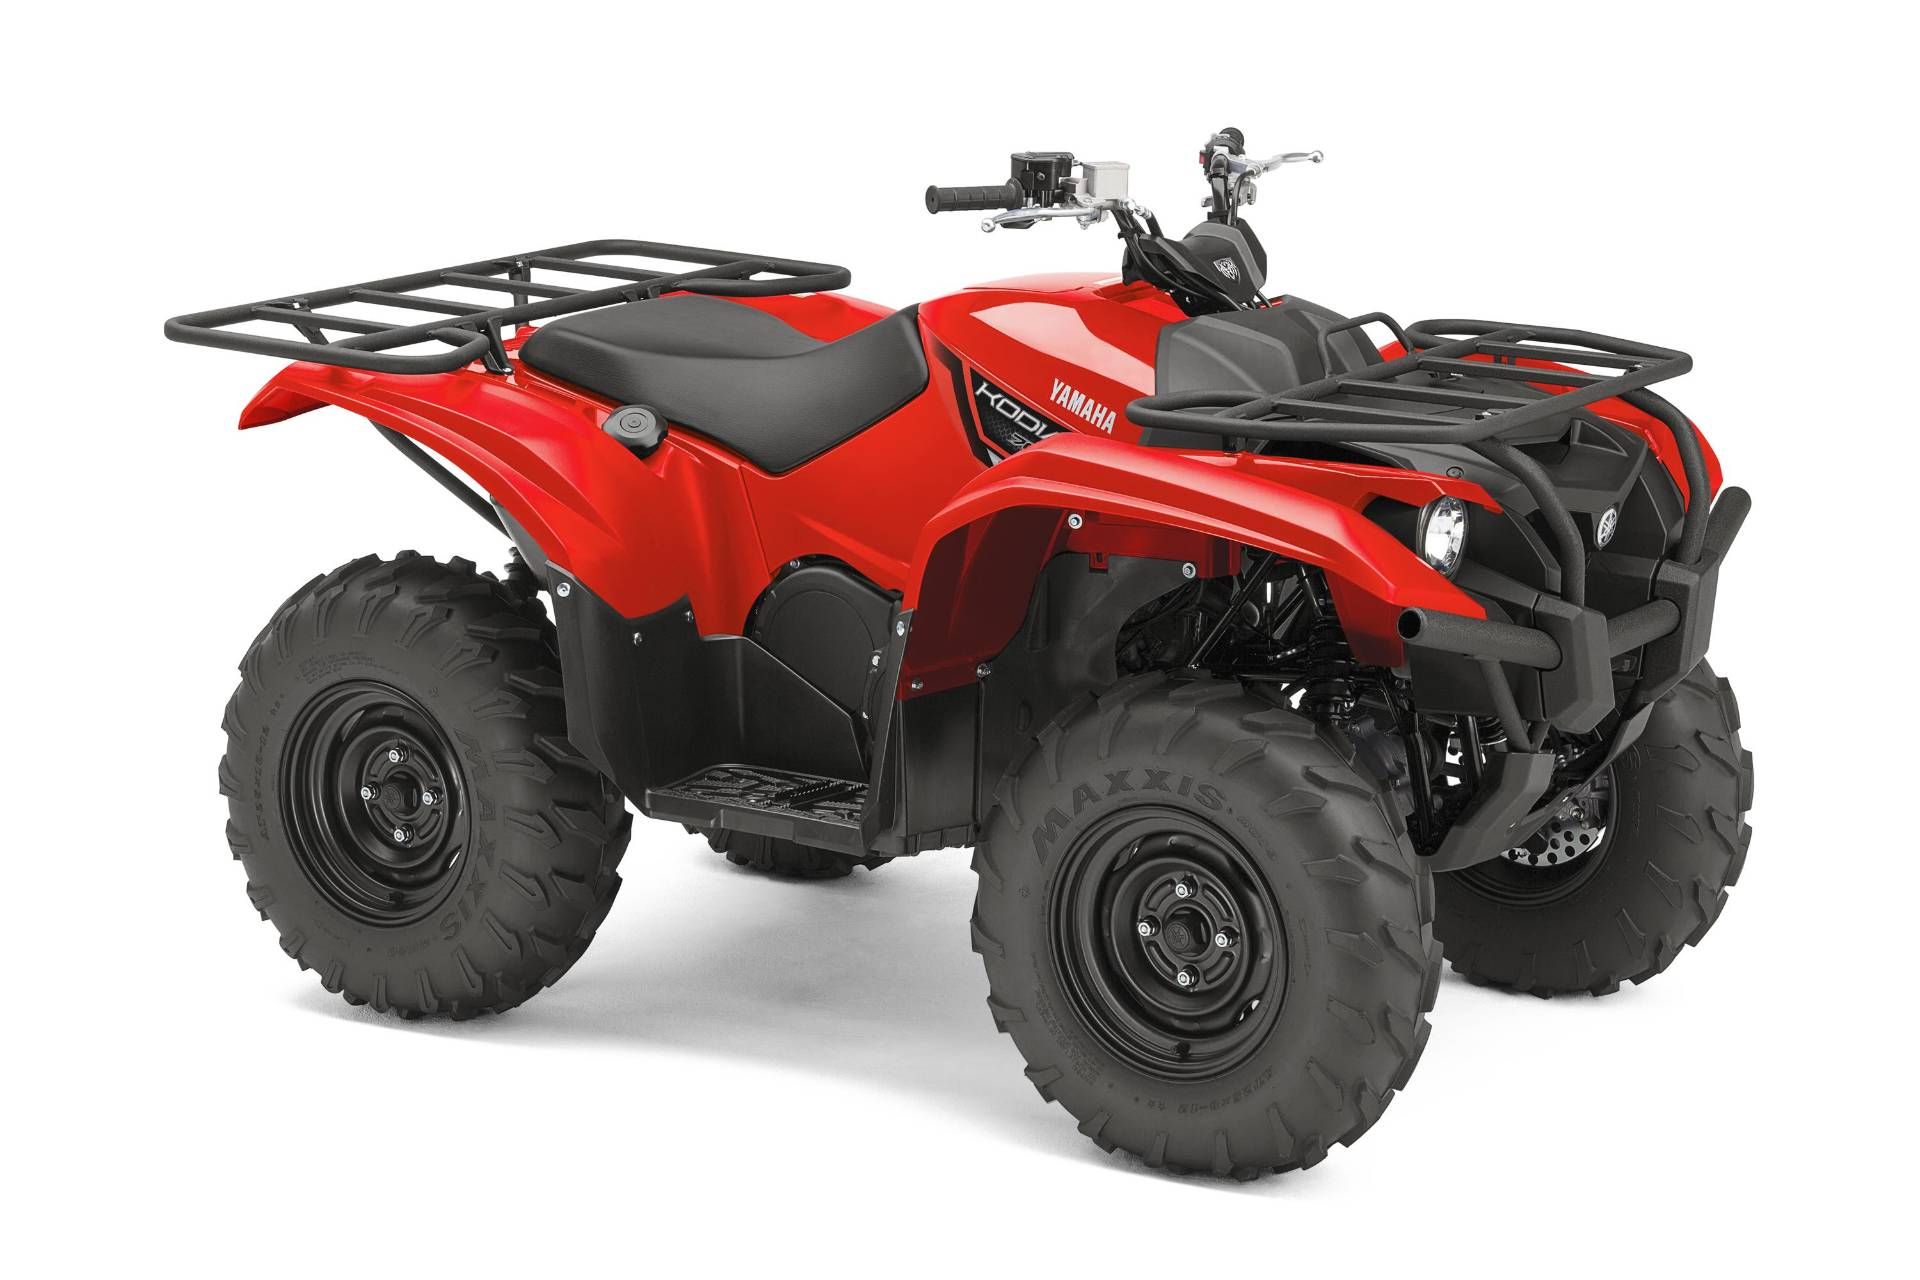 2018 Yamaha Kodiak 700 in Ames, Iowa